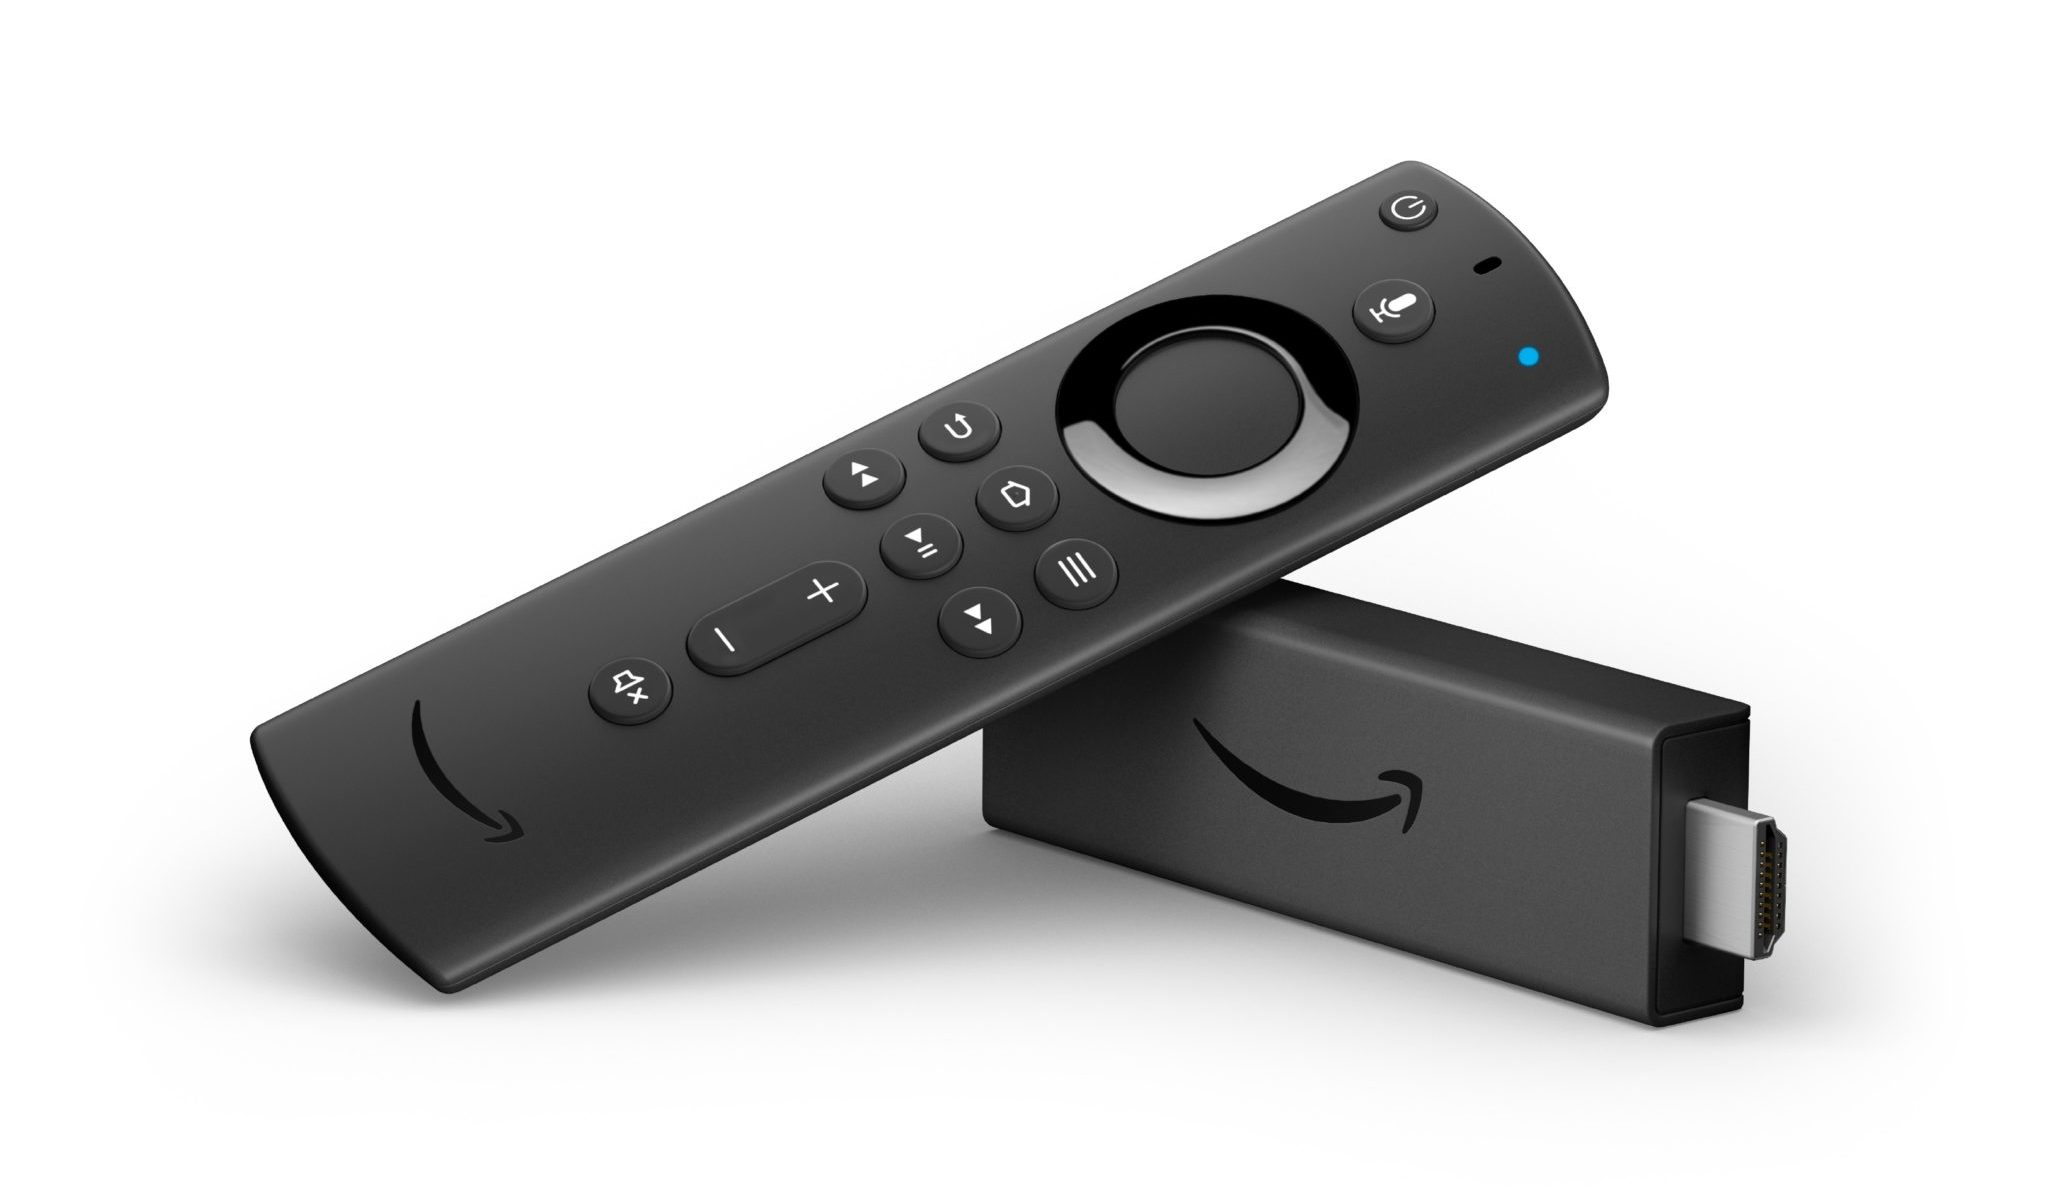 What to Expect from Amazon's Fire TV in 2020